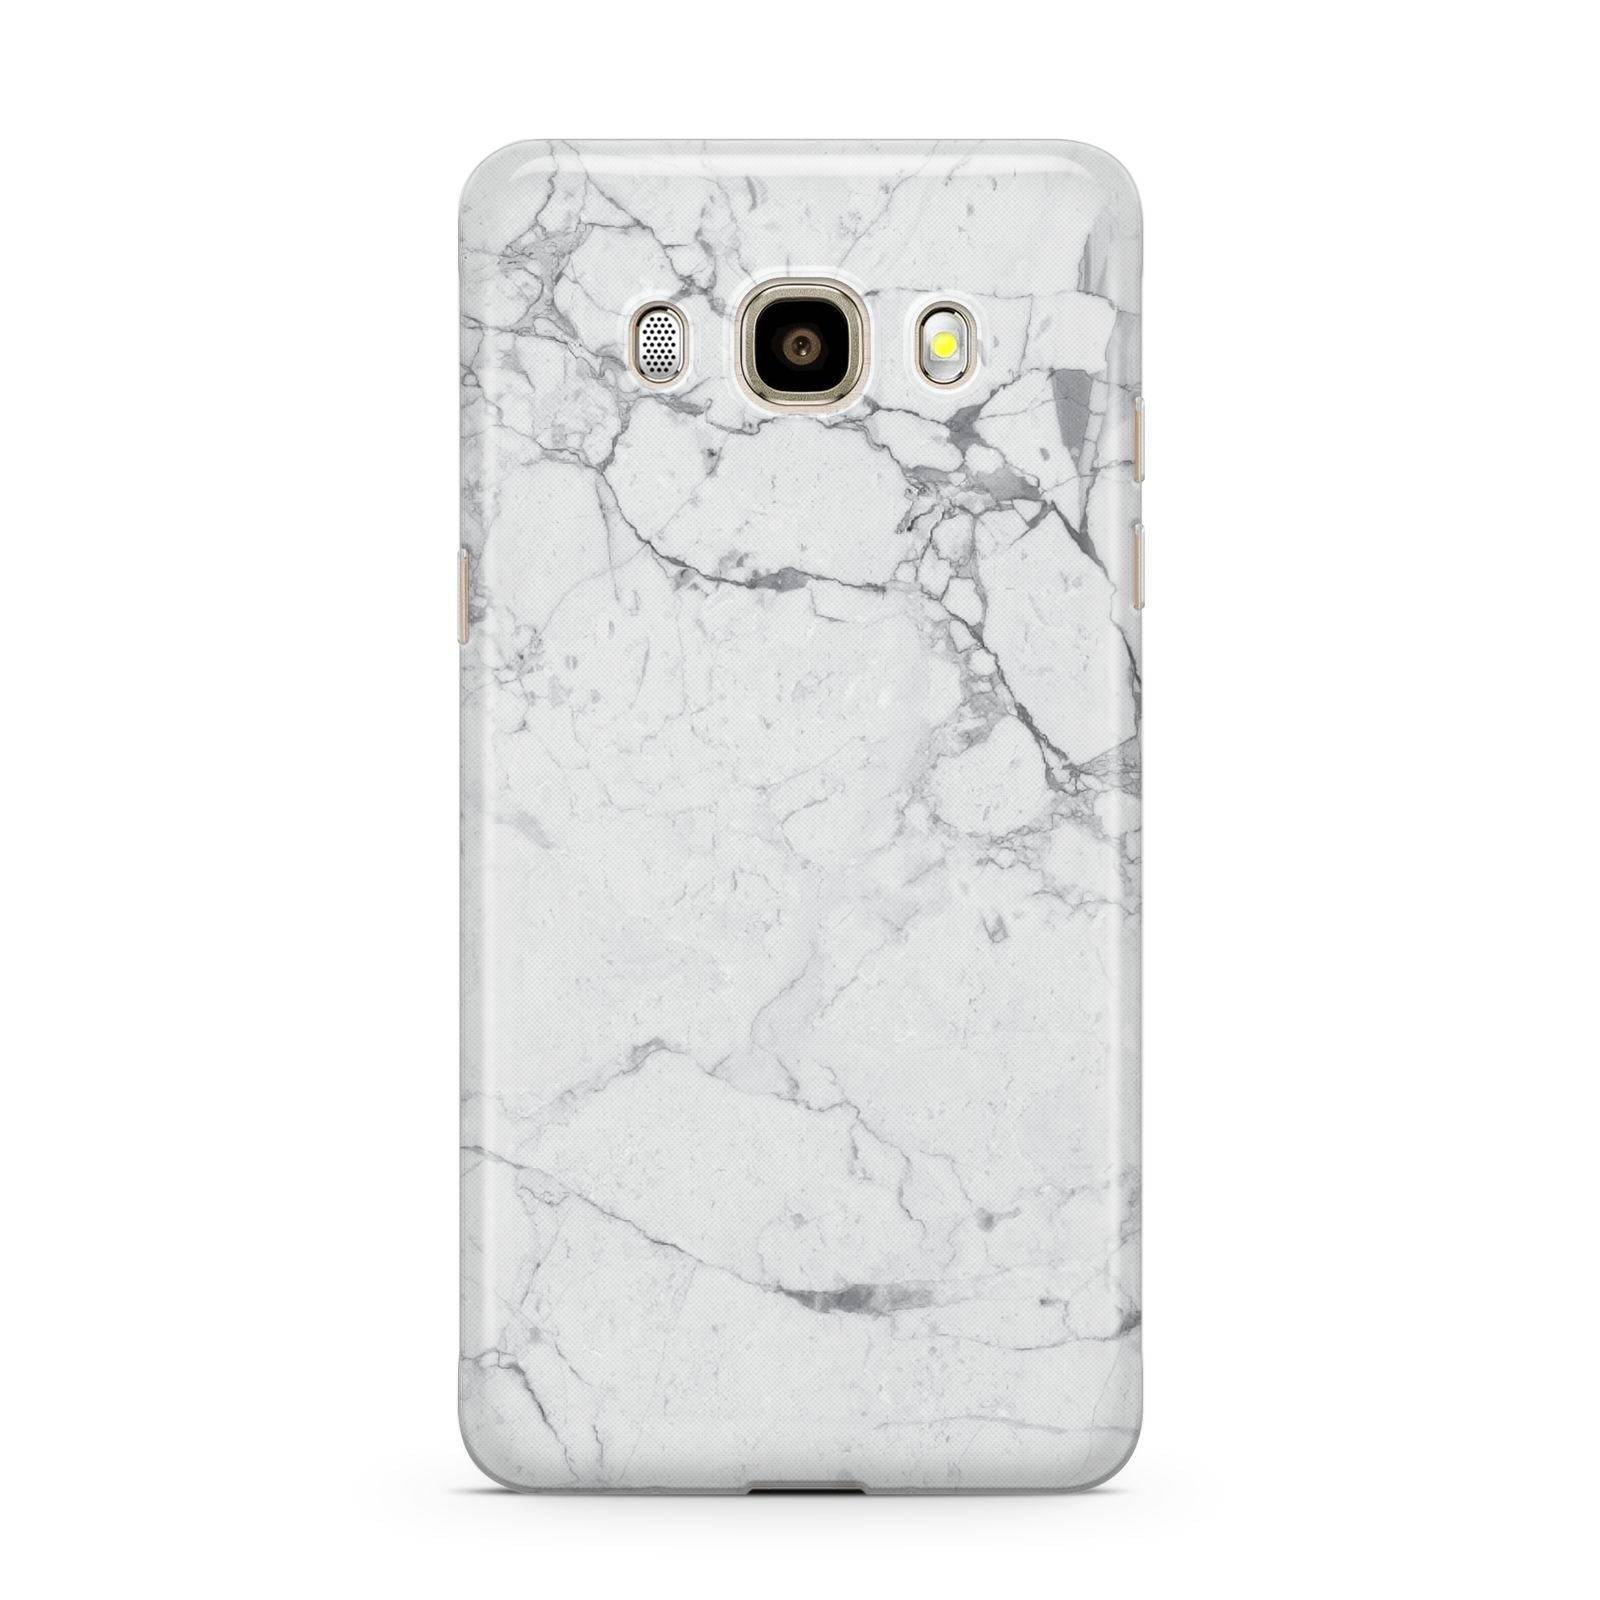 Faux Marble Effect Grey White Samsung Galaxy J7 2016 Case on gold phone